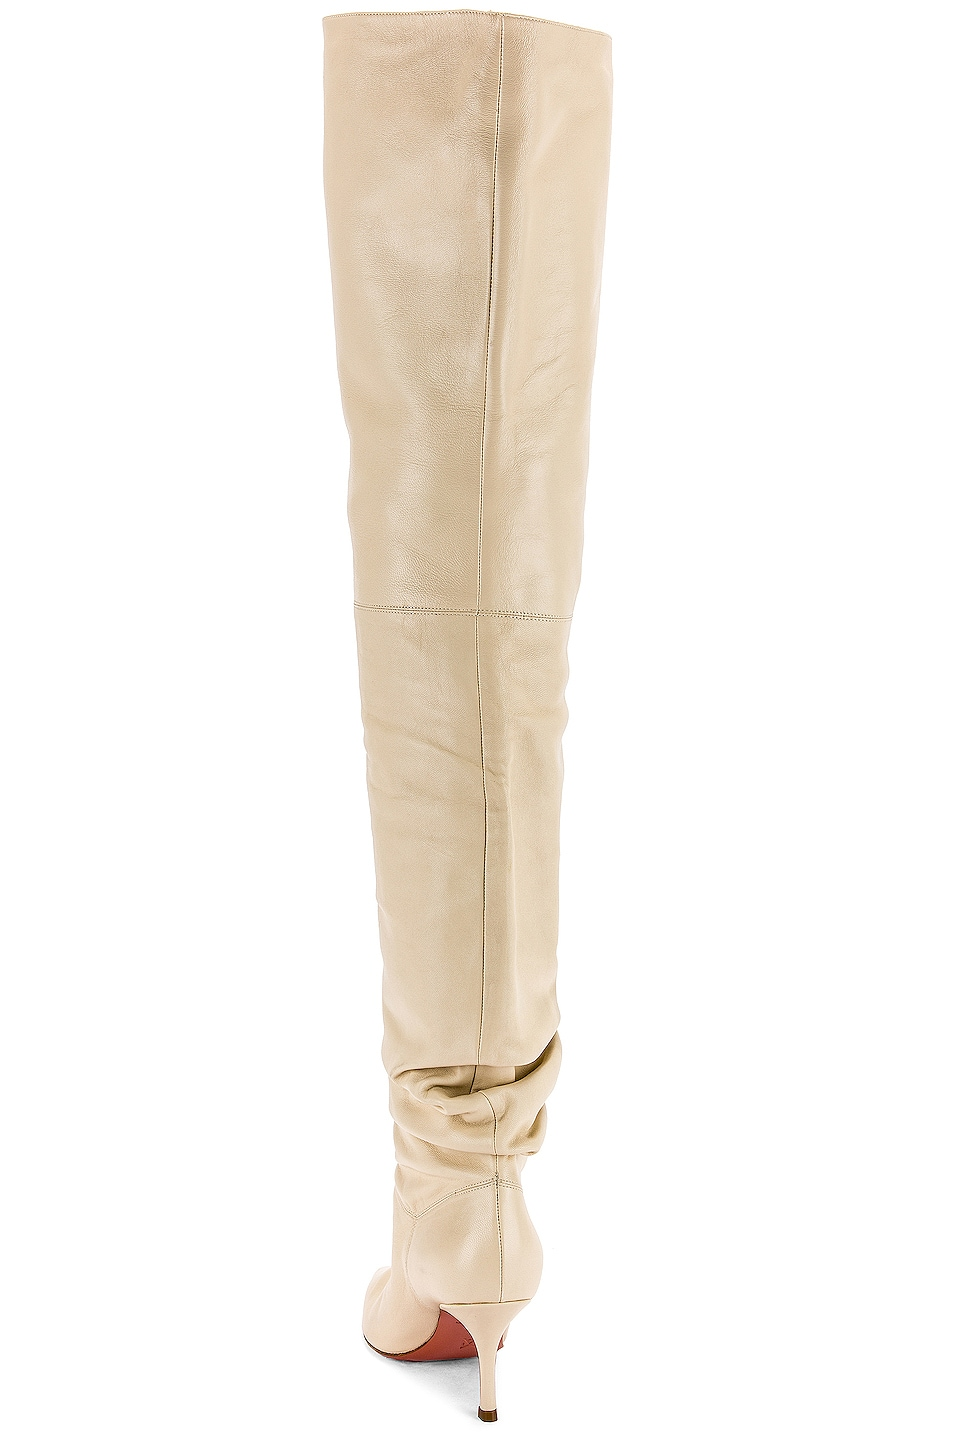 Image 3 of AMINA MUADDI Barbara 70 Boot in Ivory Nappa